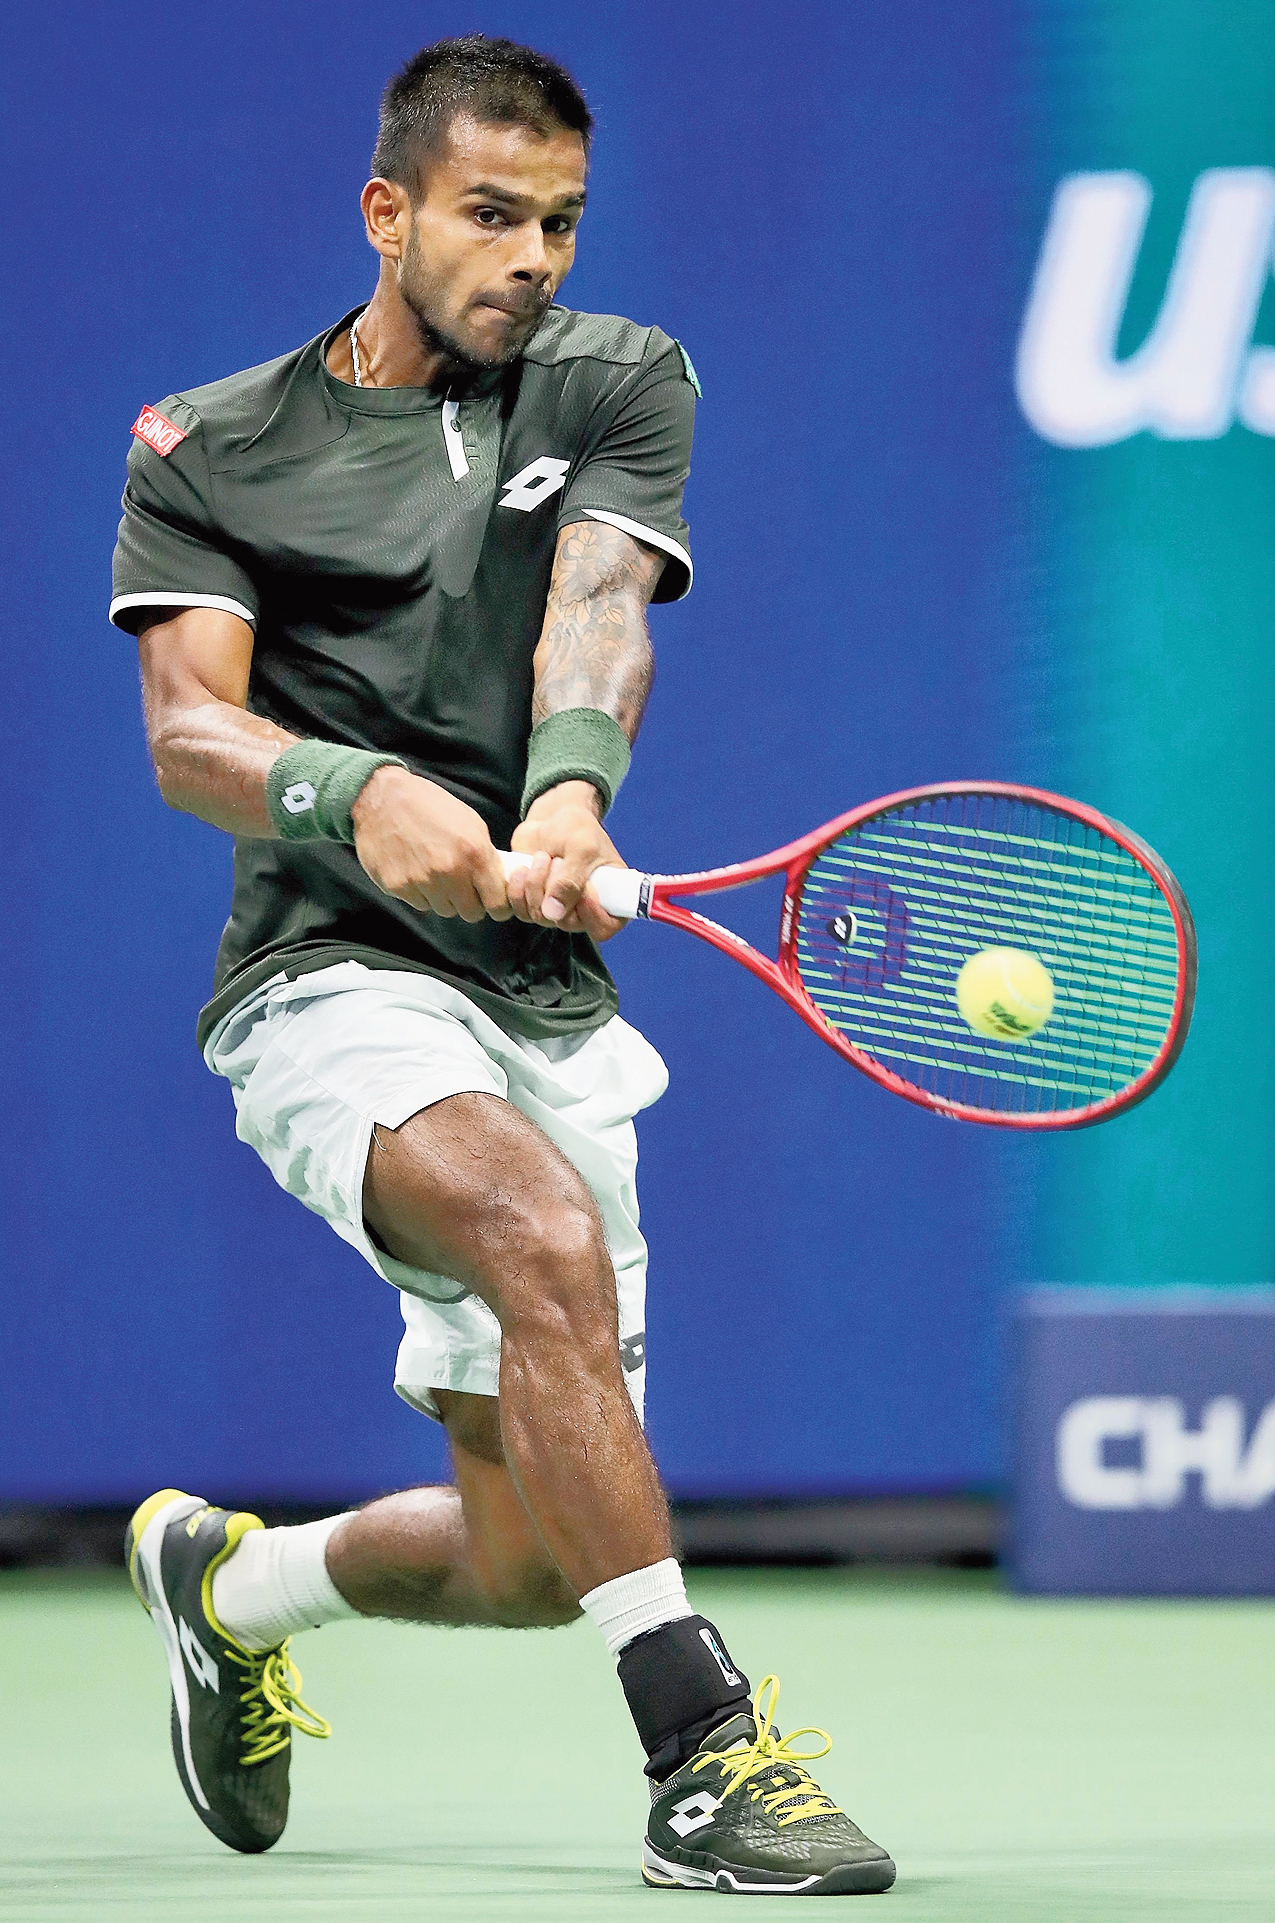 Sumit Nagal during his match against Roger Federer